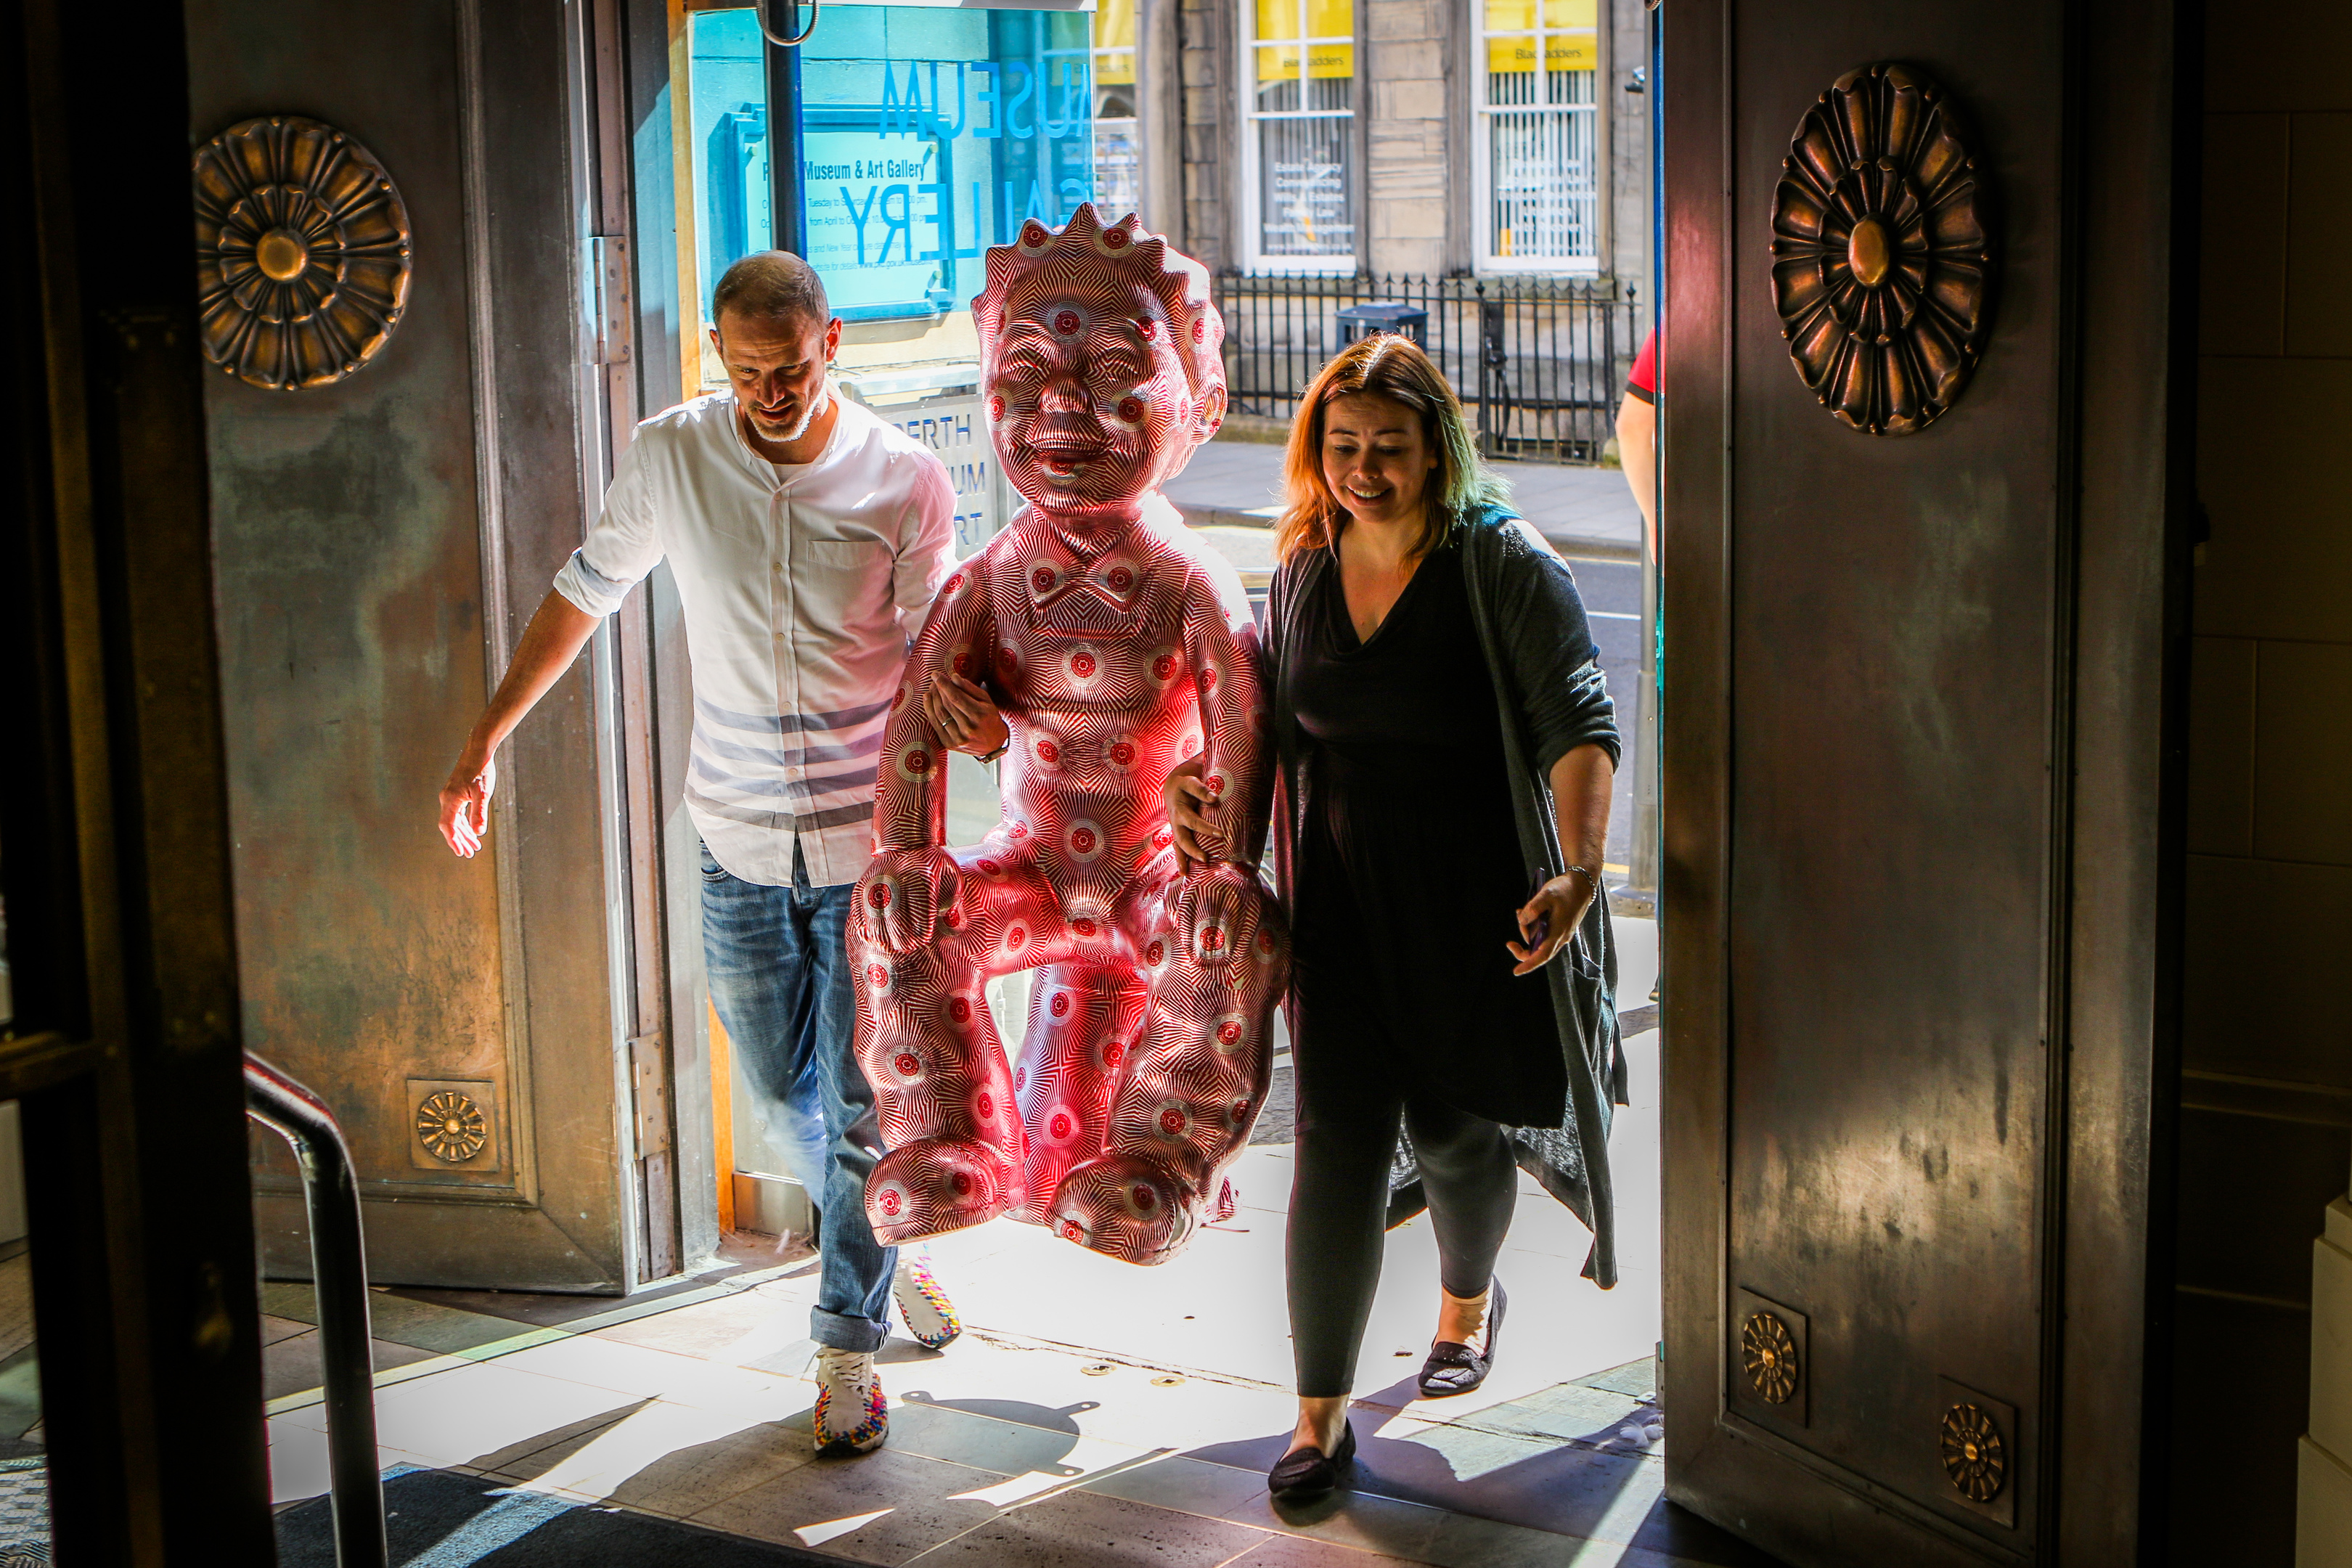 Perth Musuem and Art Gallery receive Oor Wullie statues as part of the extended Bucket Trail.